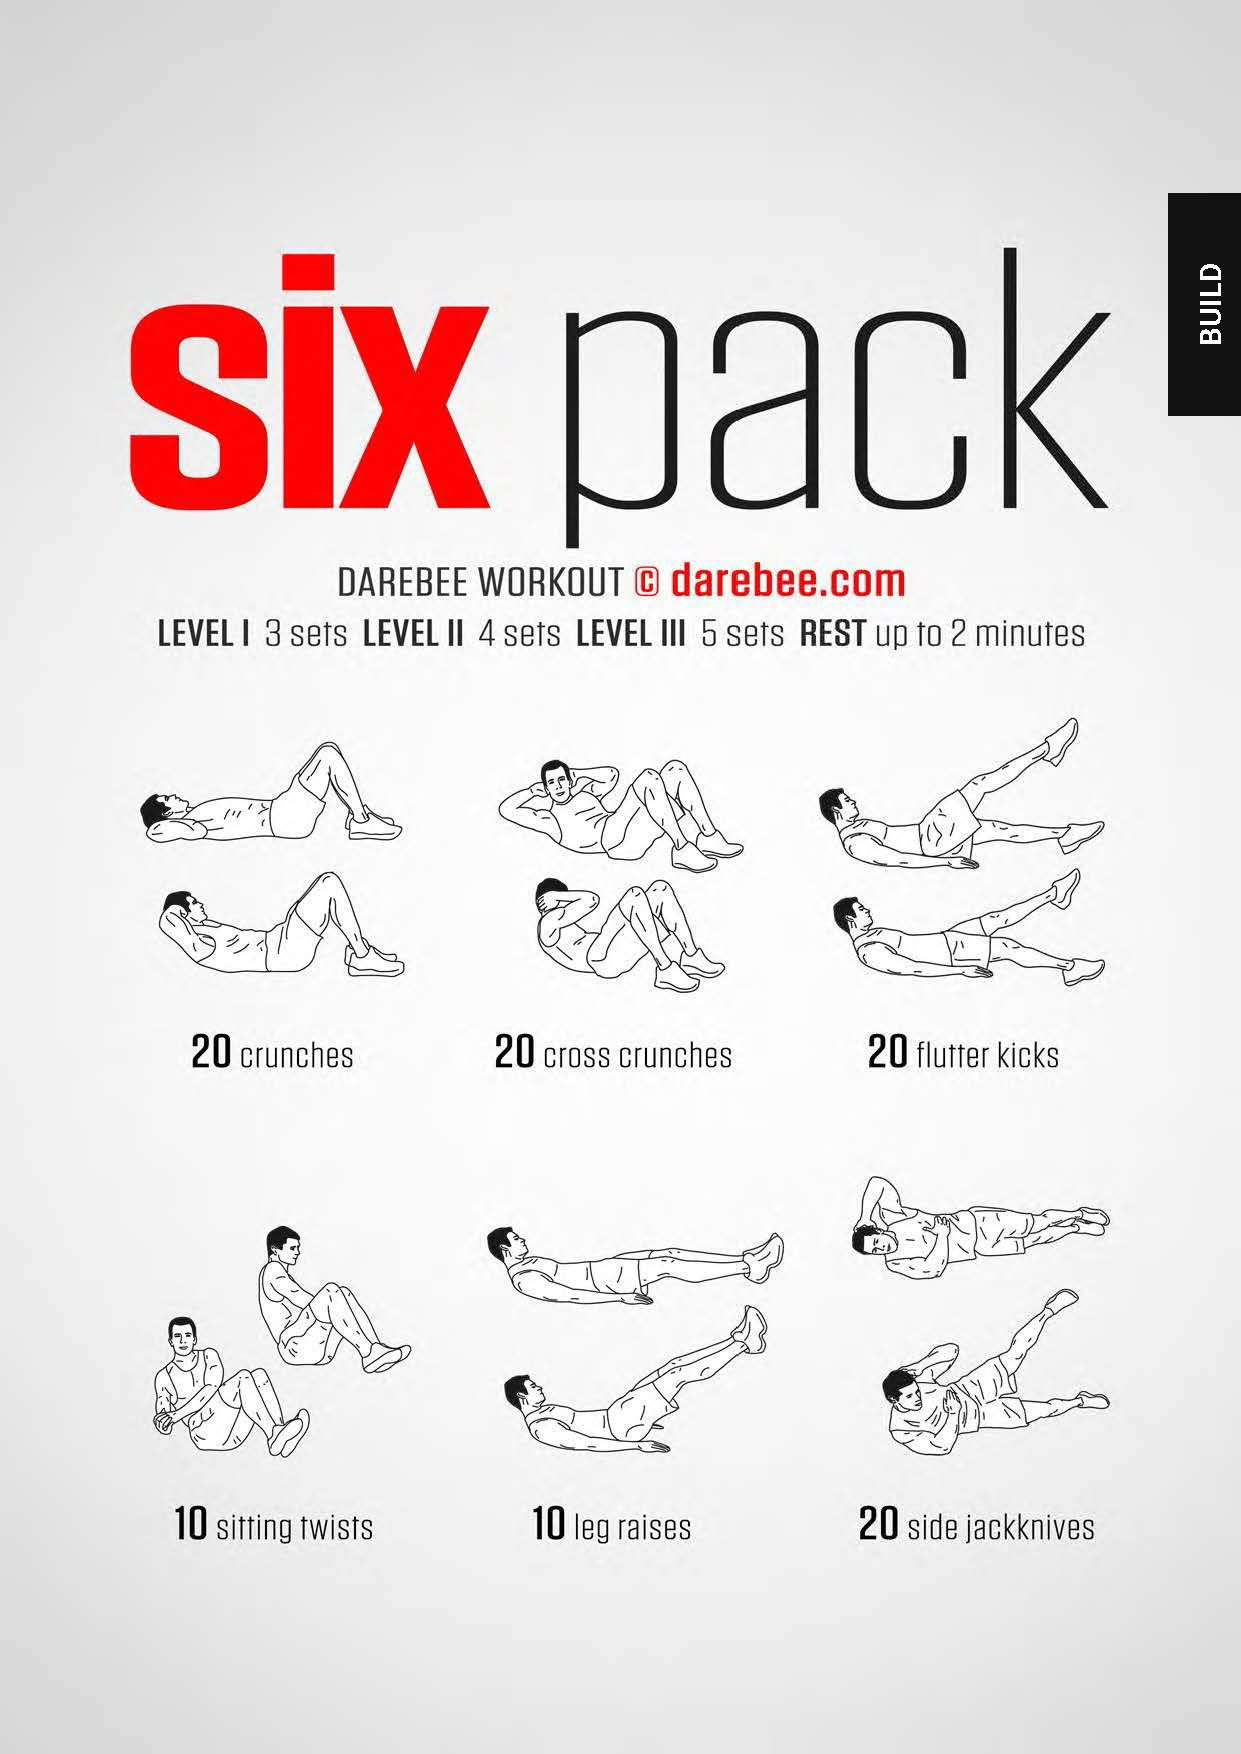 How to Quickly Get 6-Pack Abs| 8 Minute Fitness